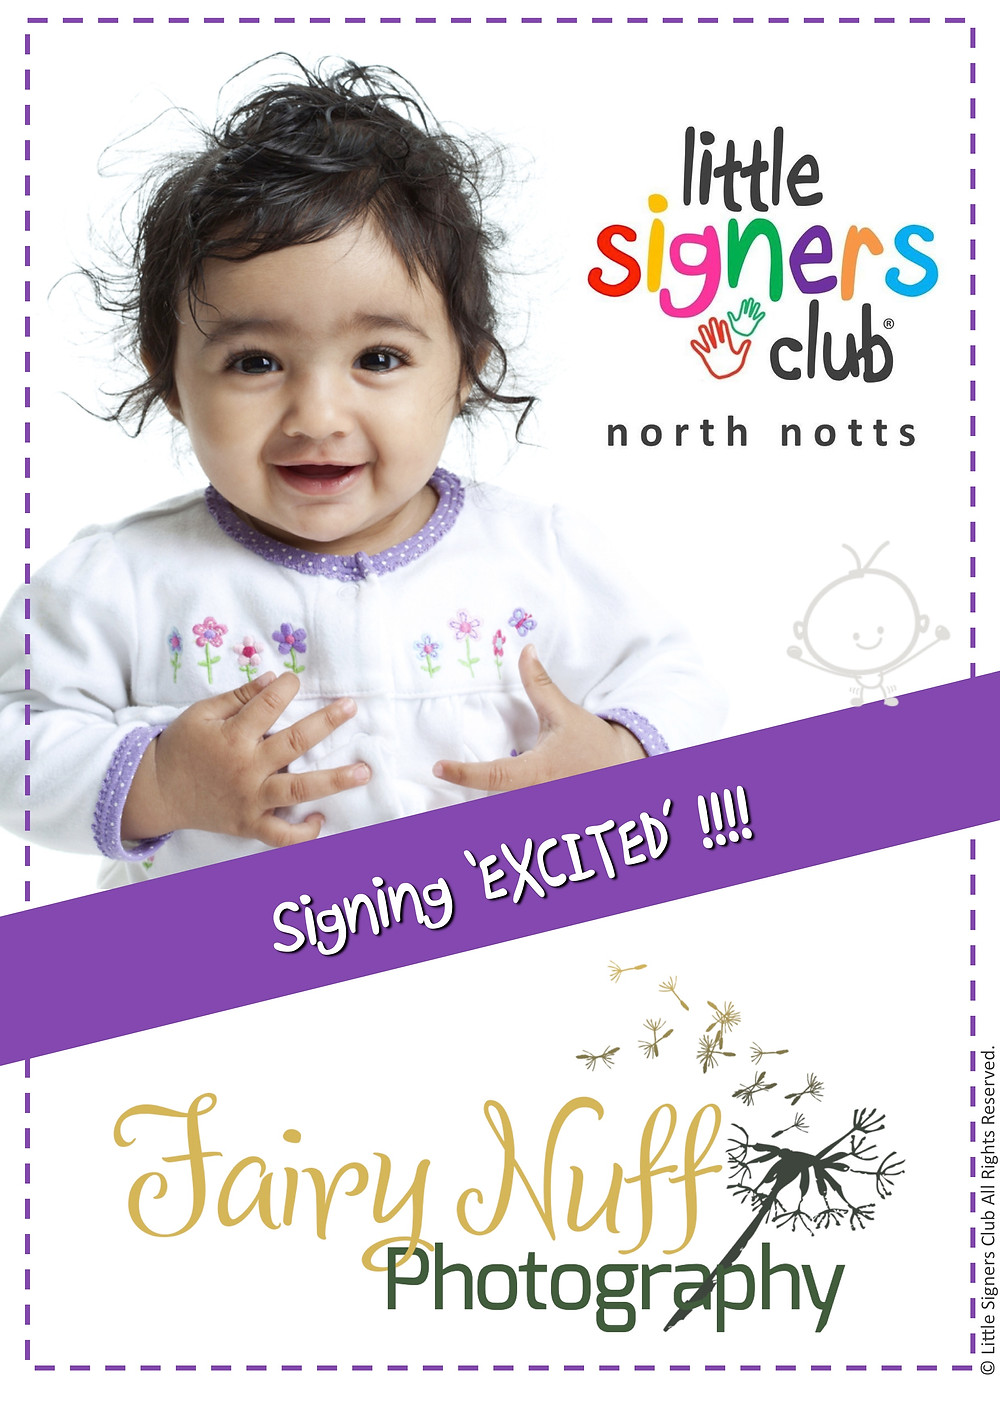 Fairy Nuff Photography working with Little Signers Club, North Nottingham